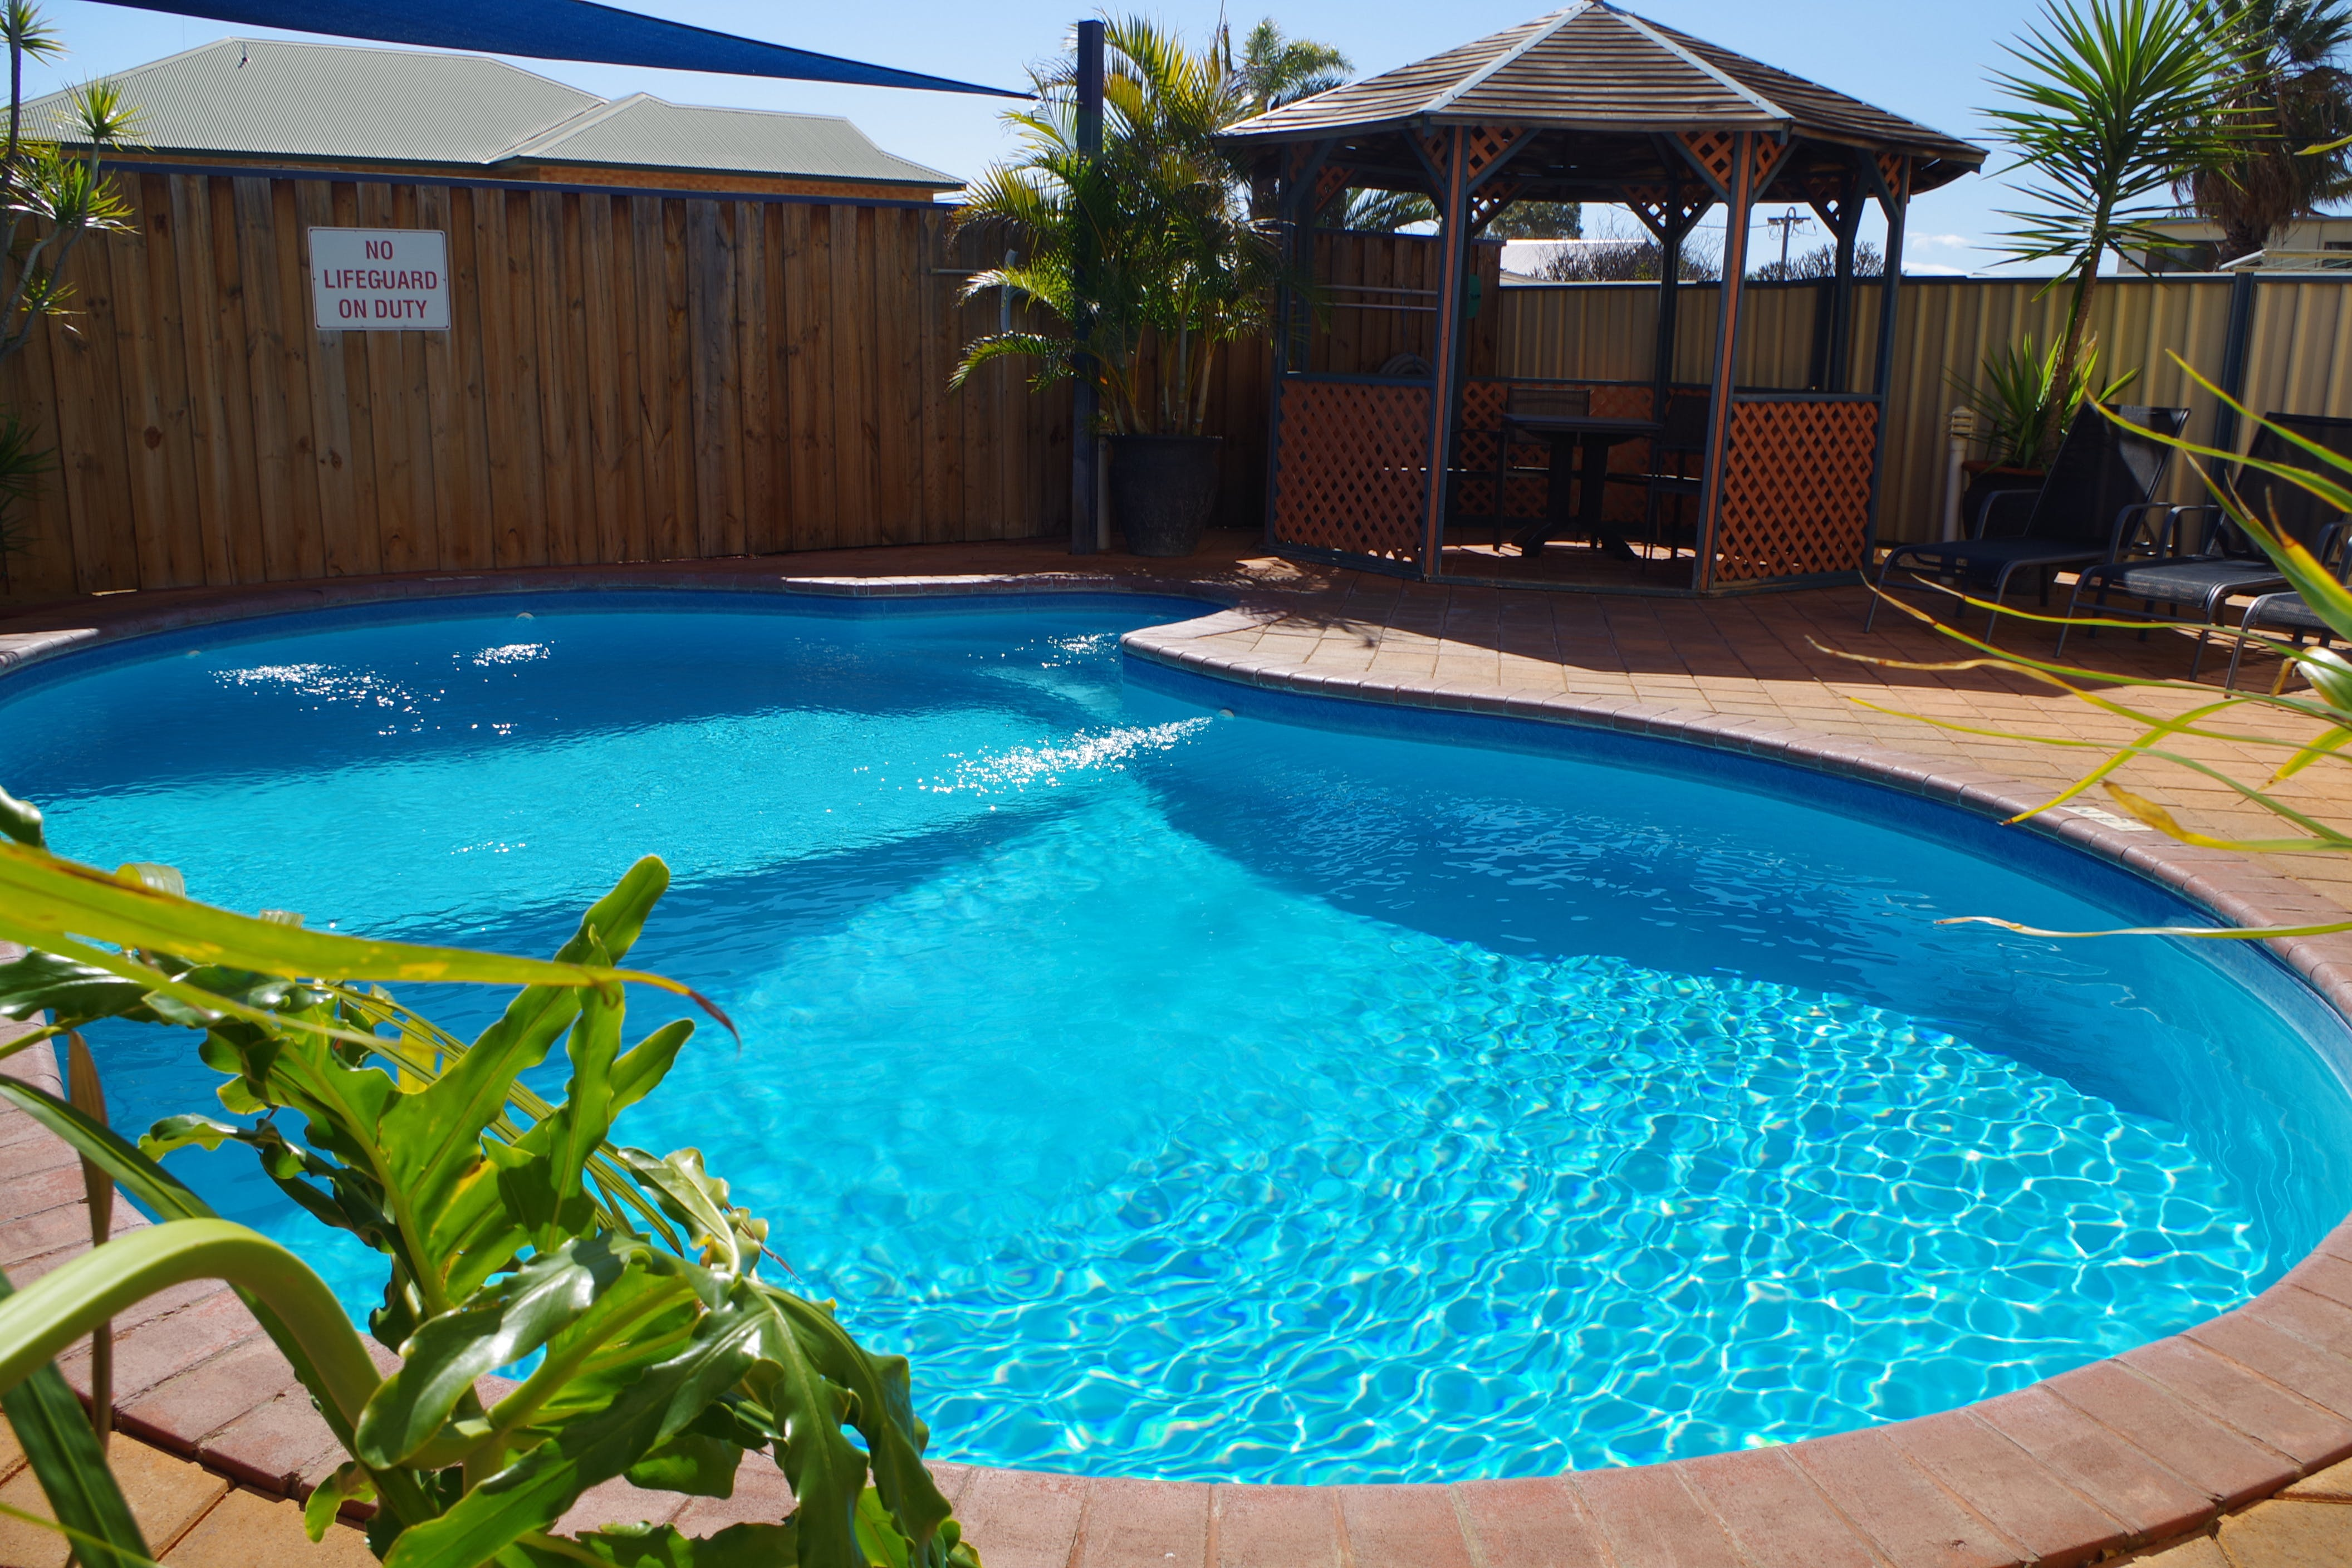 Enjoy warm kalbarri weather at our Kalbarri accommodation with pool which is solar heated.